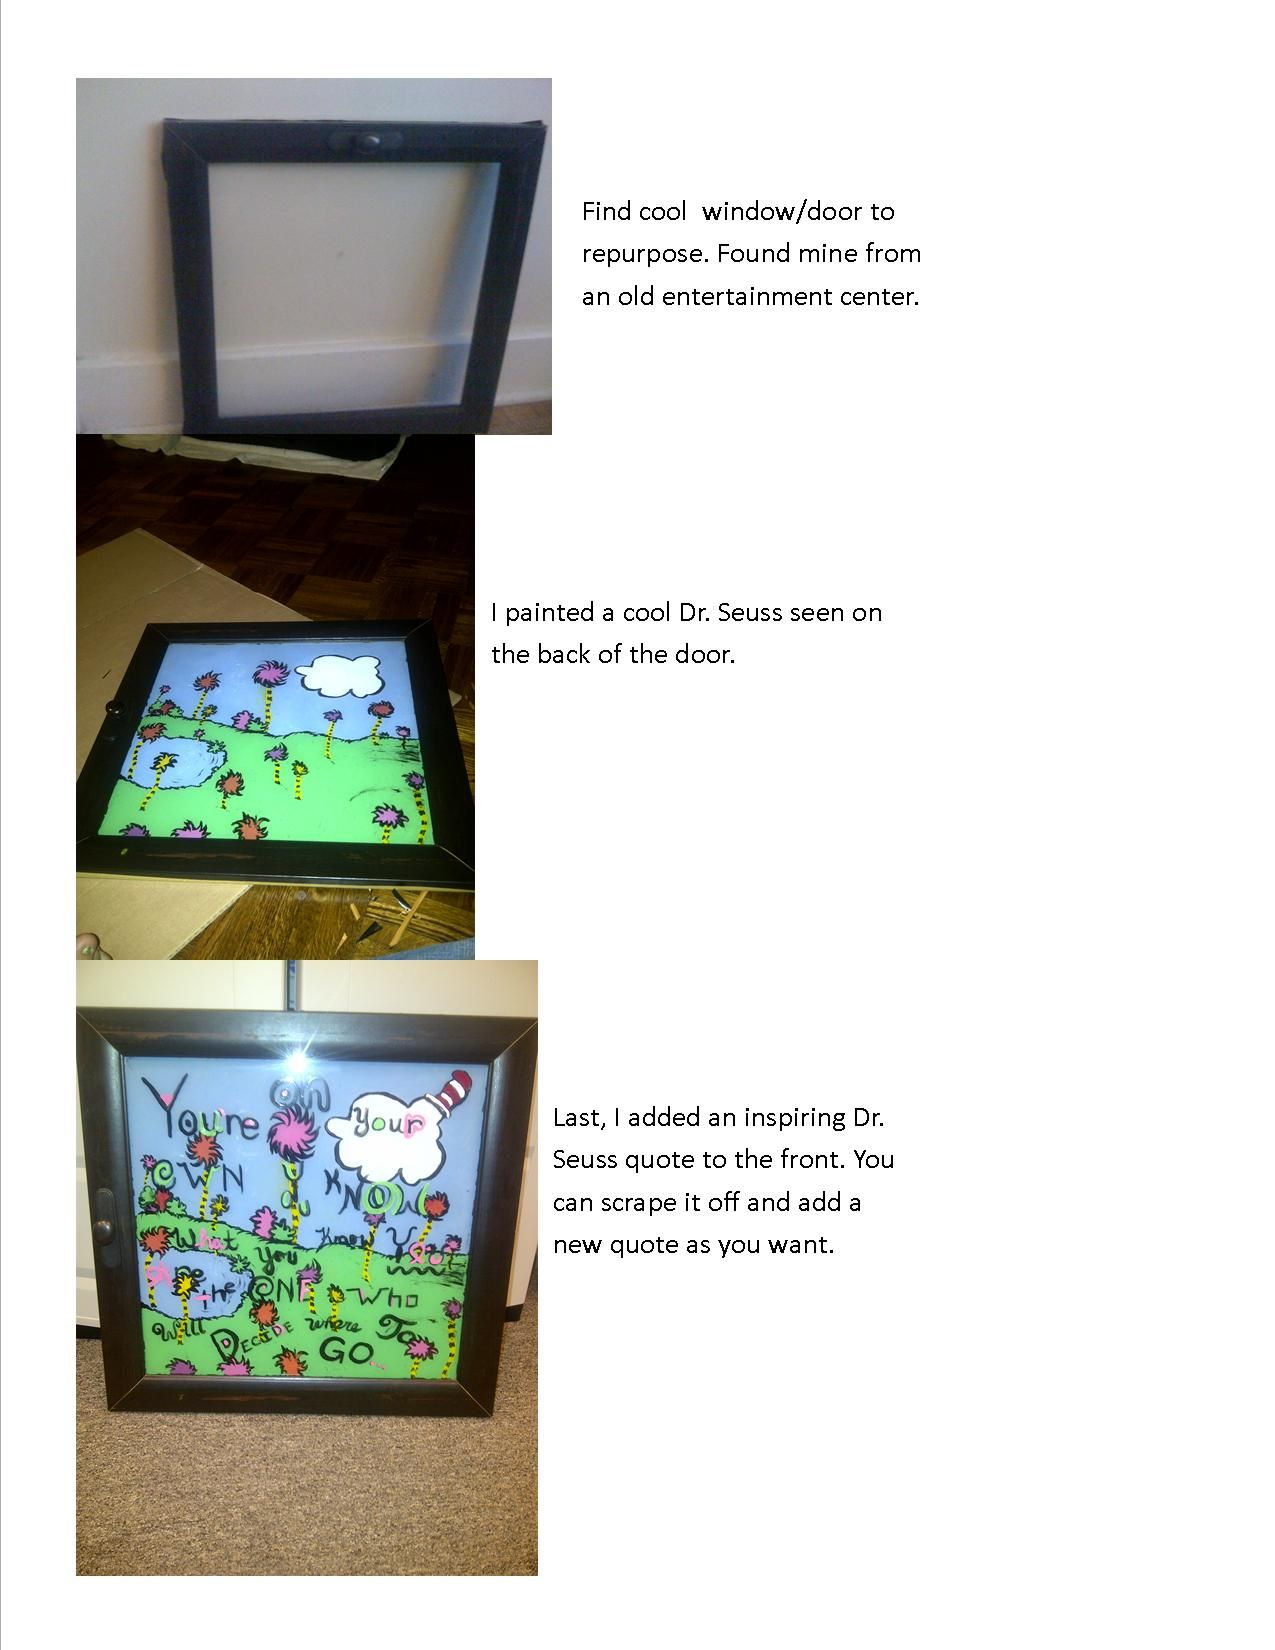 Took an old entertainment center door and made a Dr. Seuss quote painting.